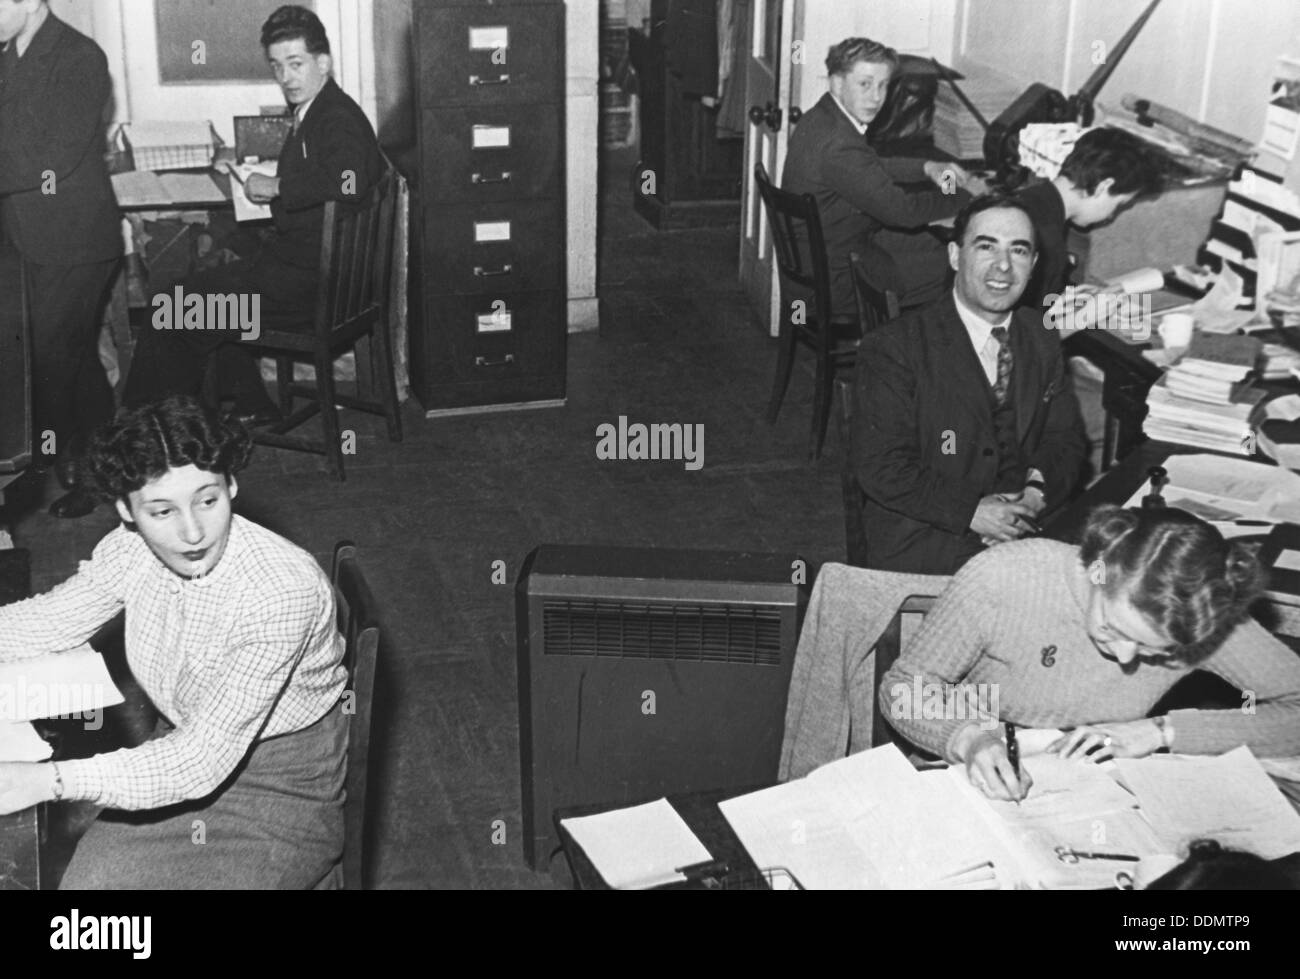 General office of the Jewish Chronicle newspaper, London, 1951. Artist: EH Emanuel - Stock Image